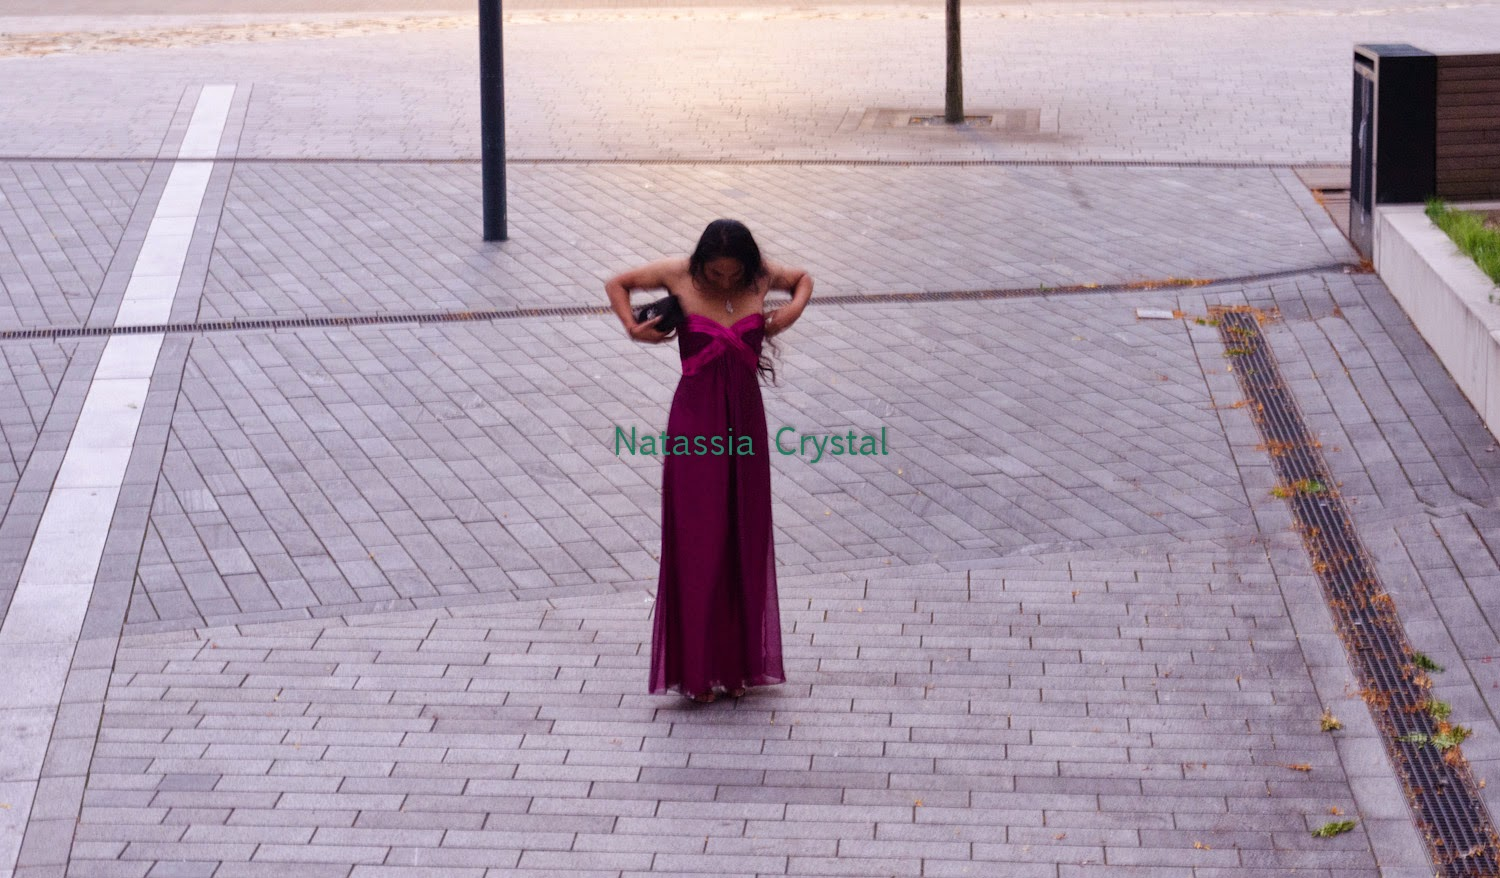 Natassia Crystal natcrys, long purple dress, outside adjusting the dress